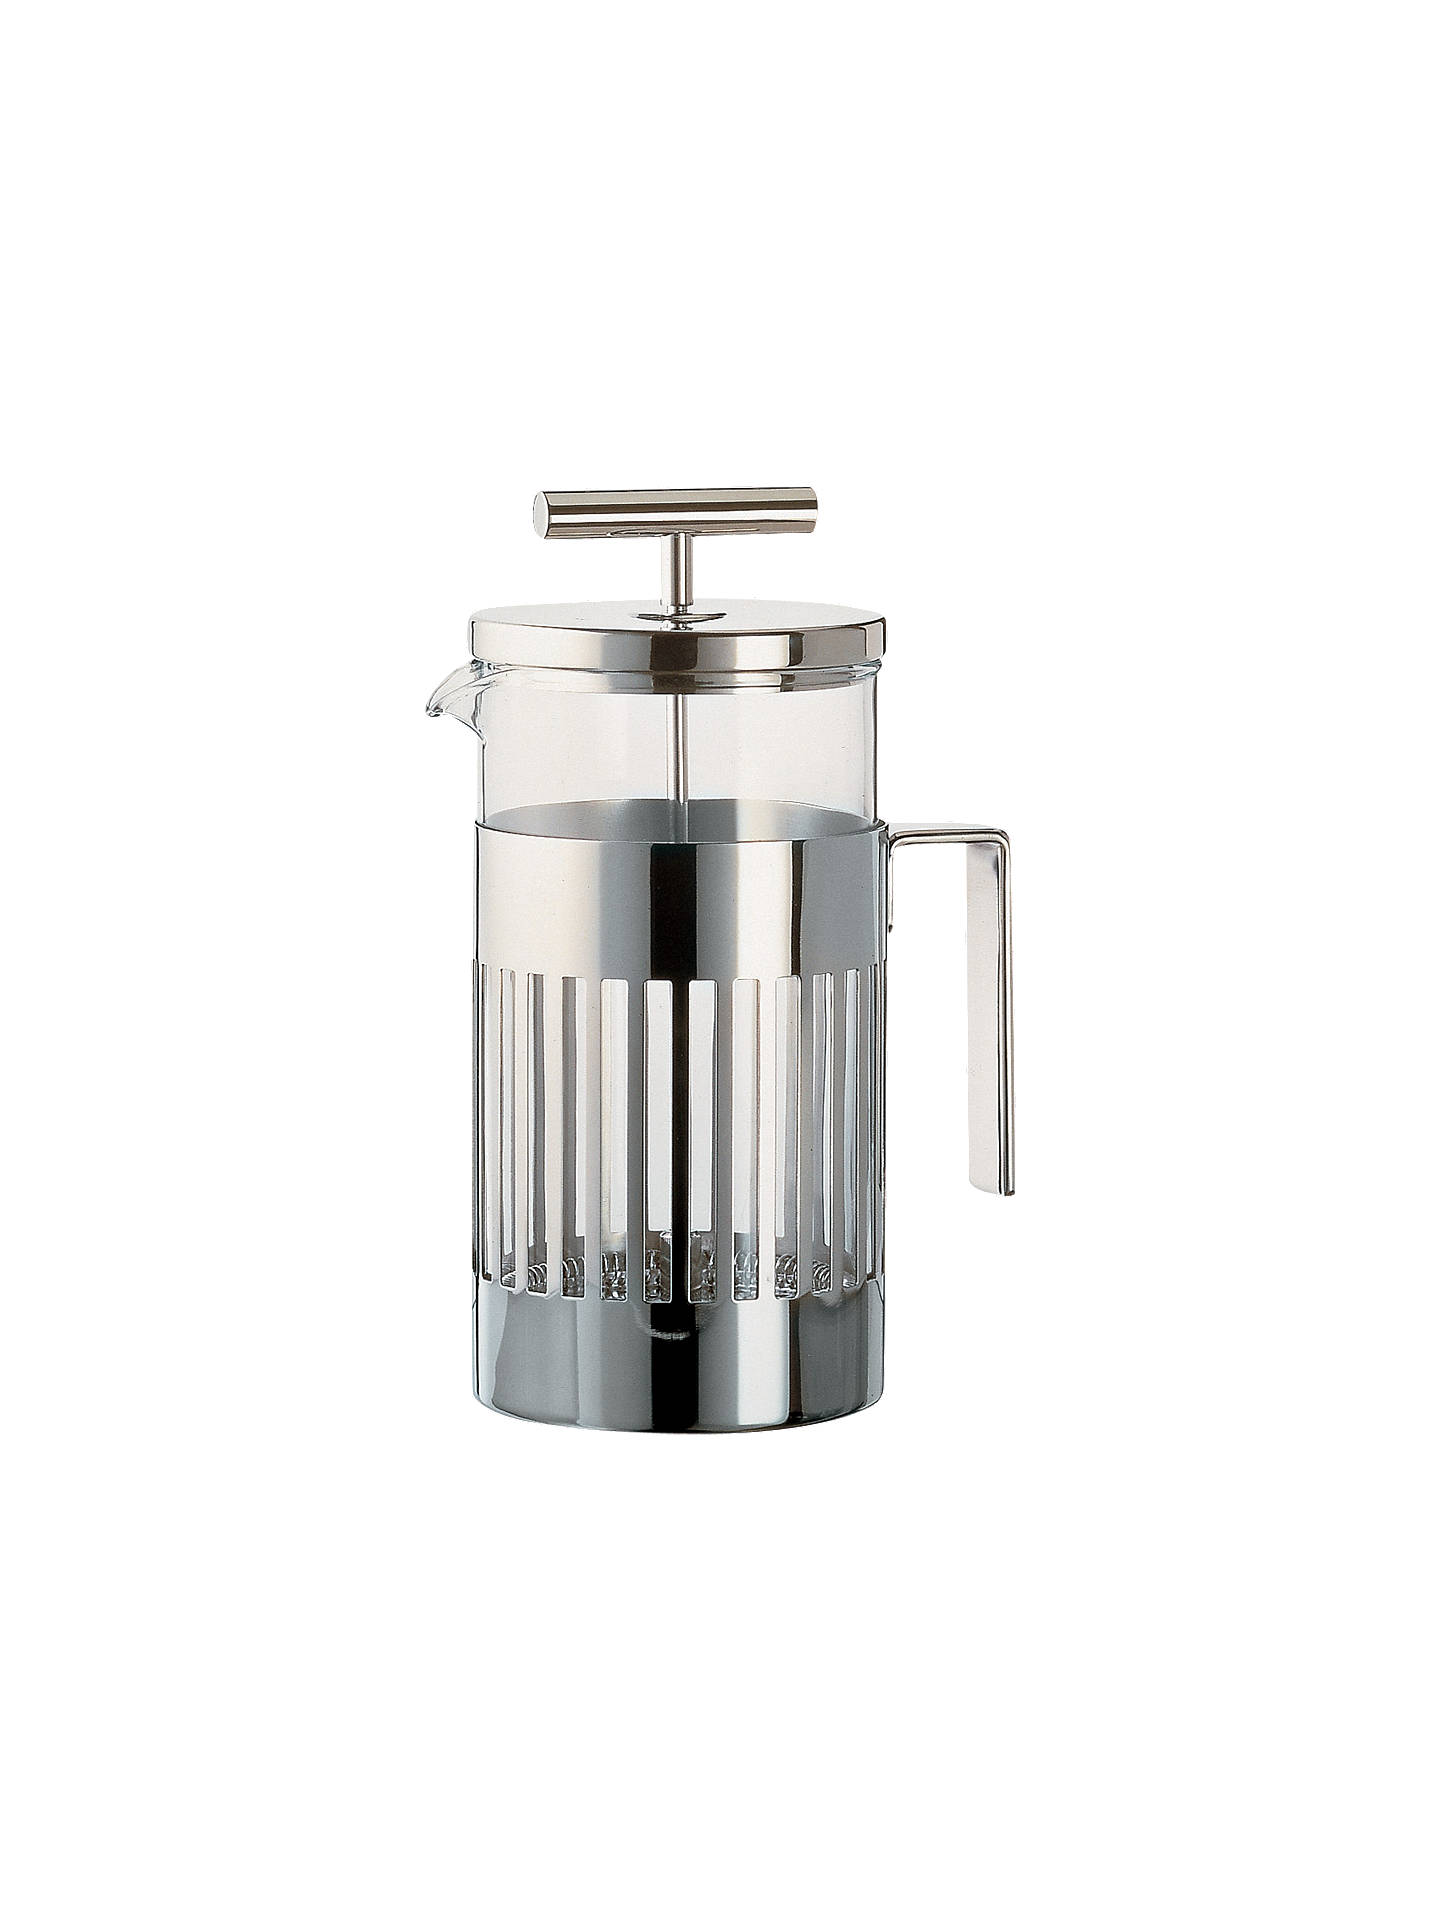 Buy Alessi Filter Coffee Press, 3 Cup Online at johnlewis.com